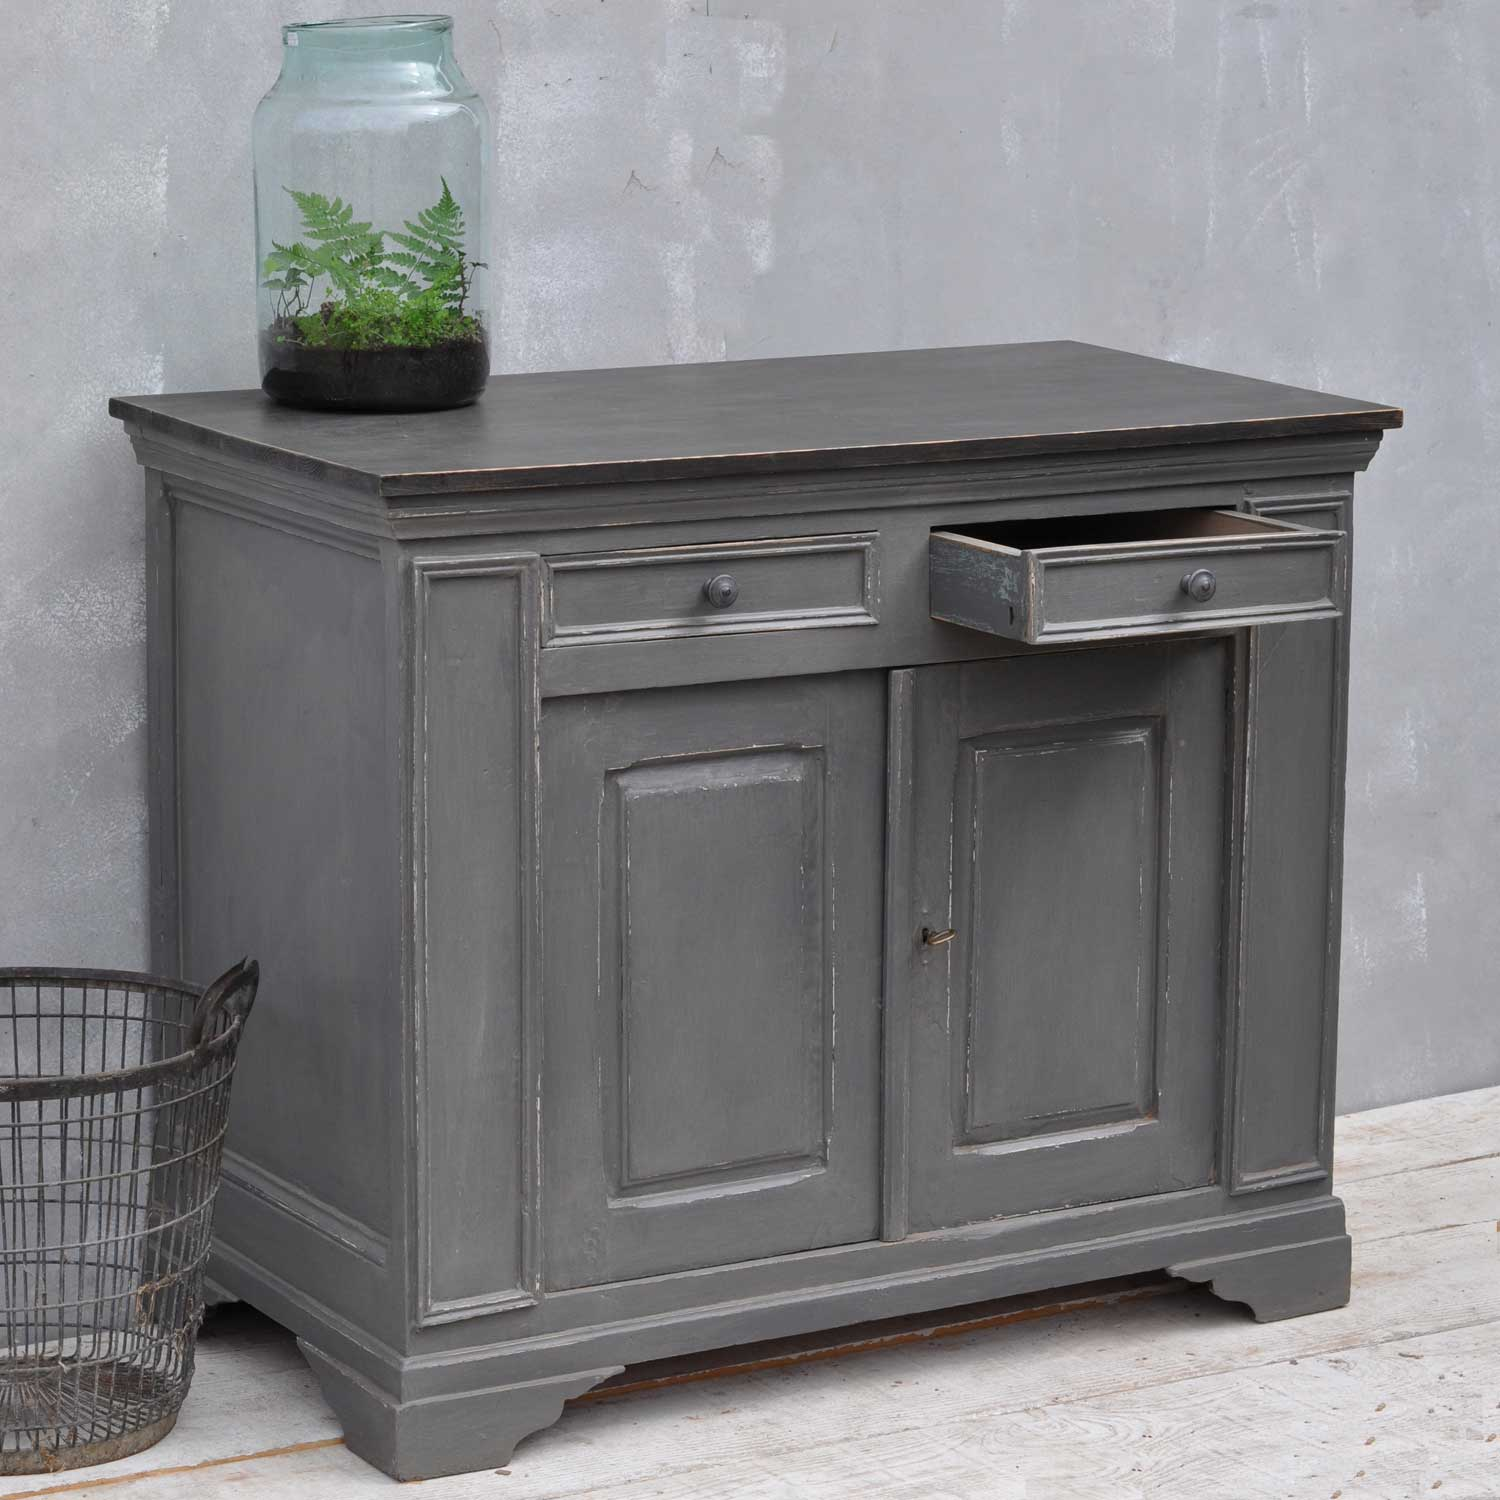 Black Coffee Table With Glass Top Vintage French Cupboard - Grey Hand Painted Cabinet - Home